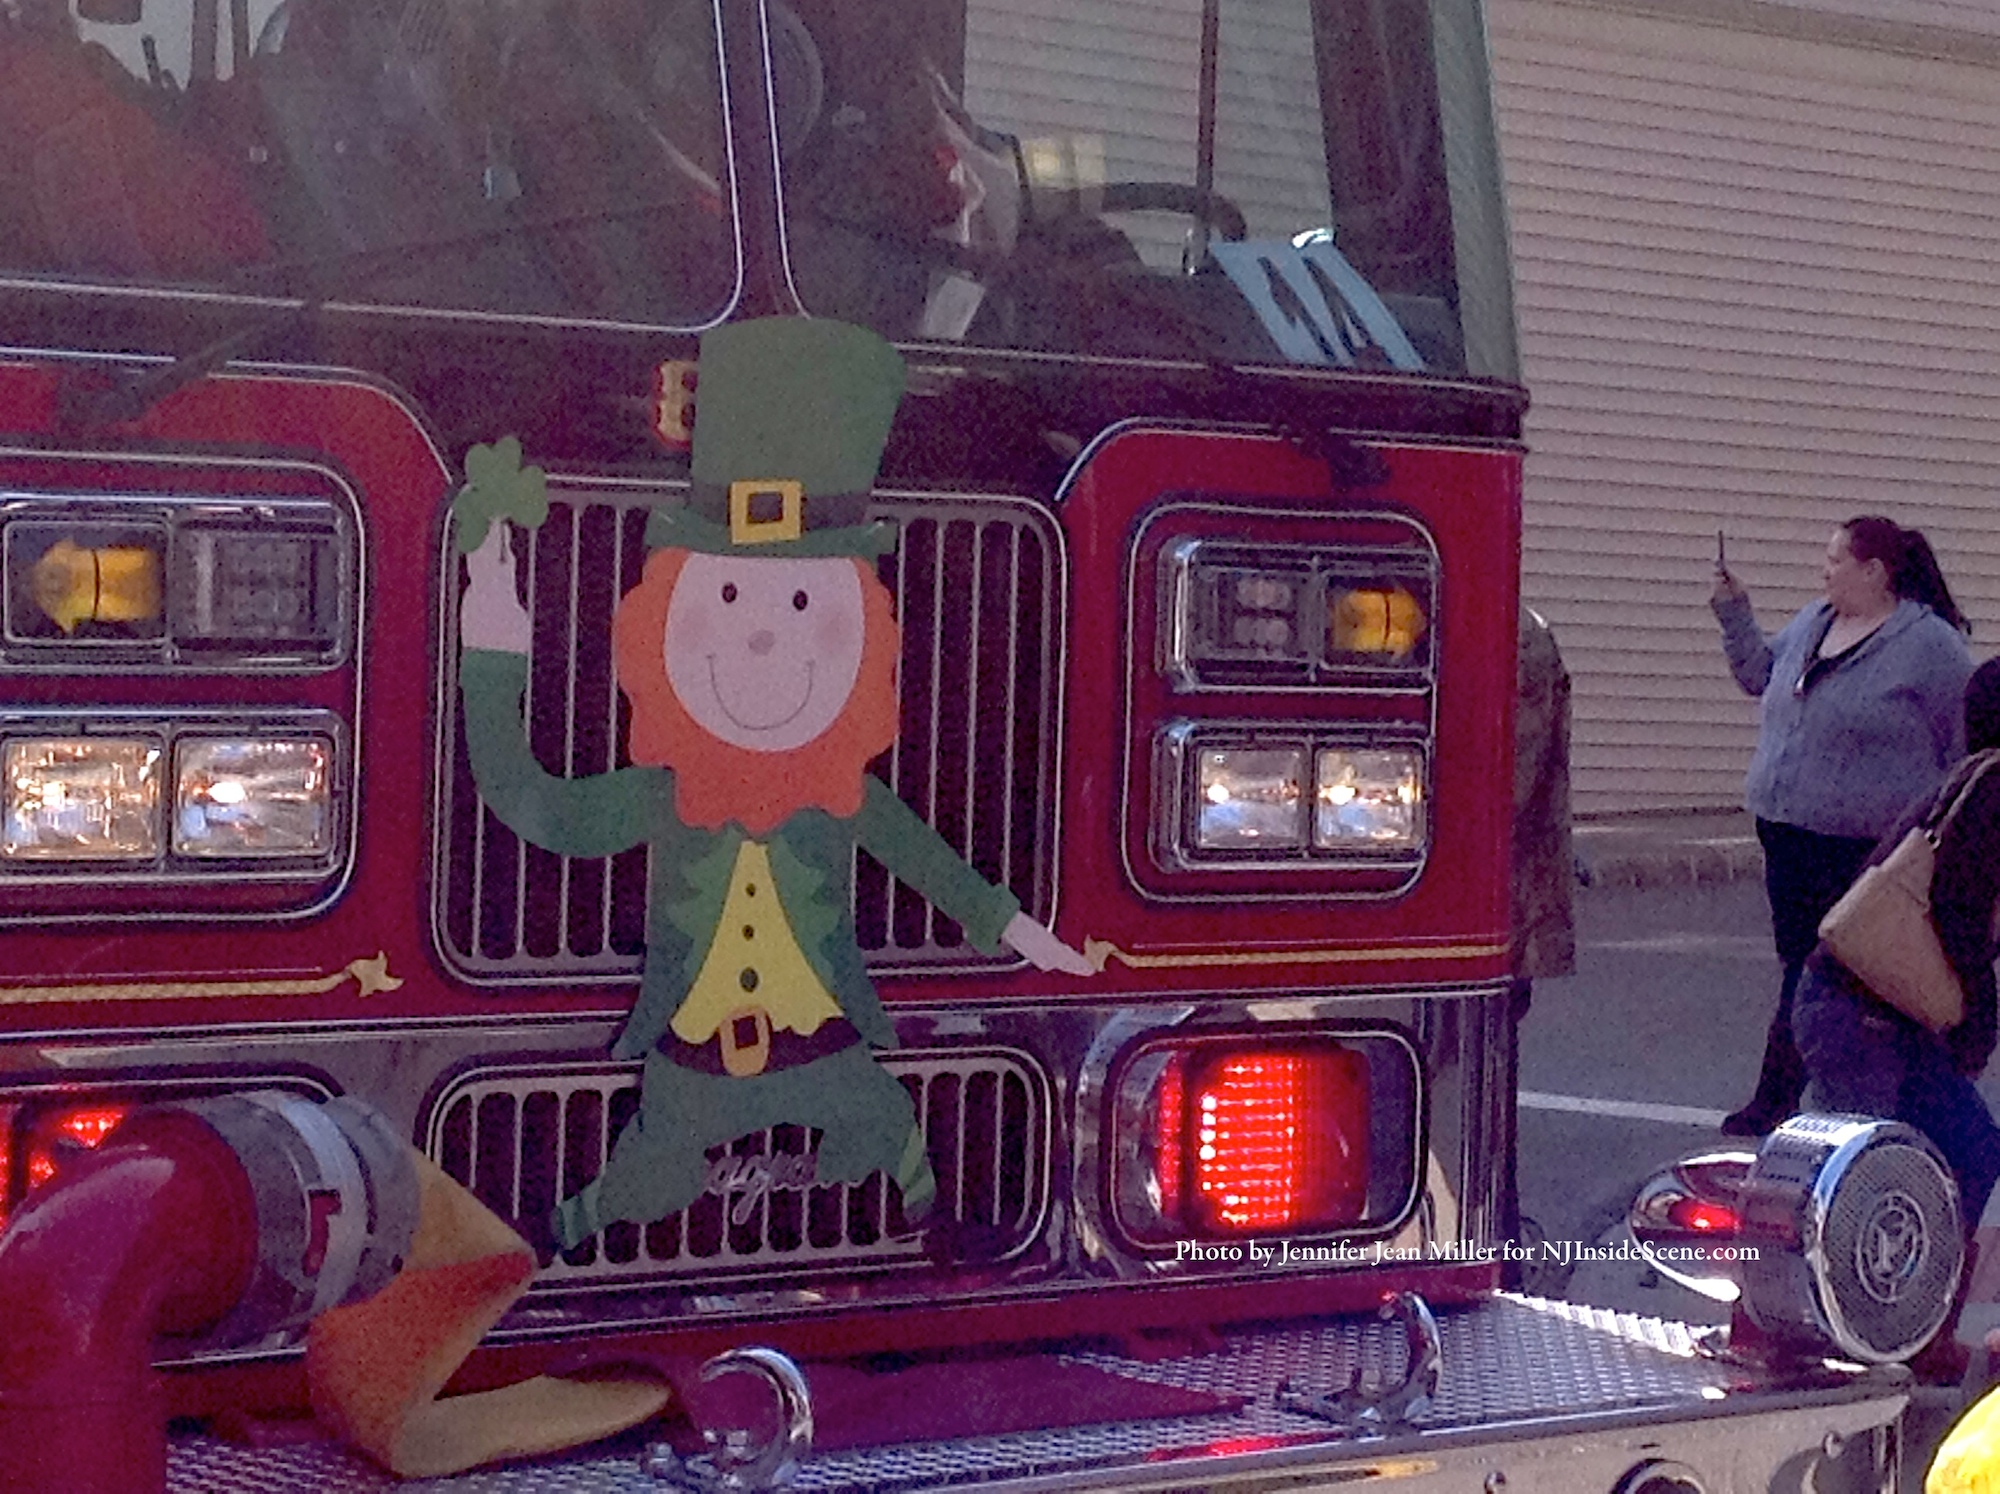 One of the fire engines sporting a leprechaun on front. Photo by Jennifer Jean Miler.